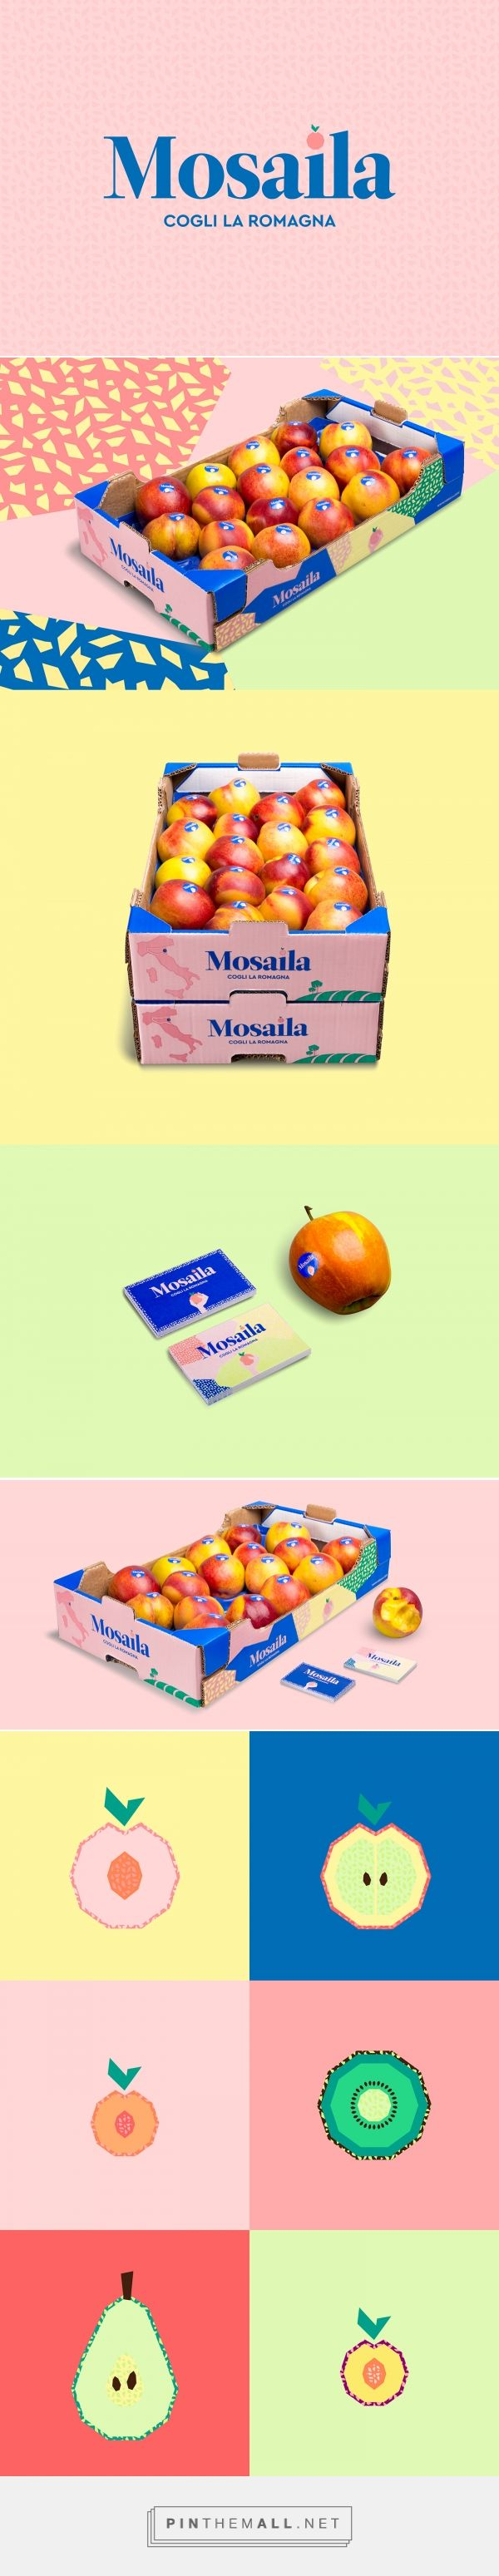 Mosaila Seasonal Fruit Packaging by Collettivo Mare   Fivestar Branding Agency – Design and Branding Agency & Curated Inspiration Gallery